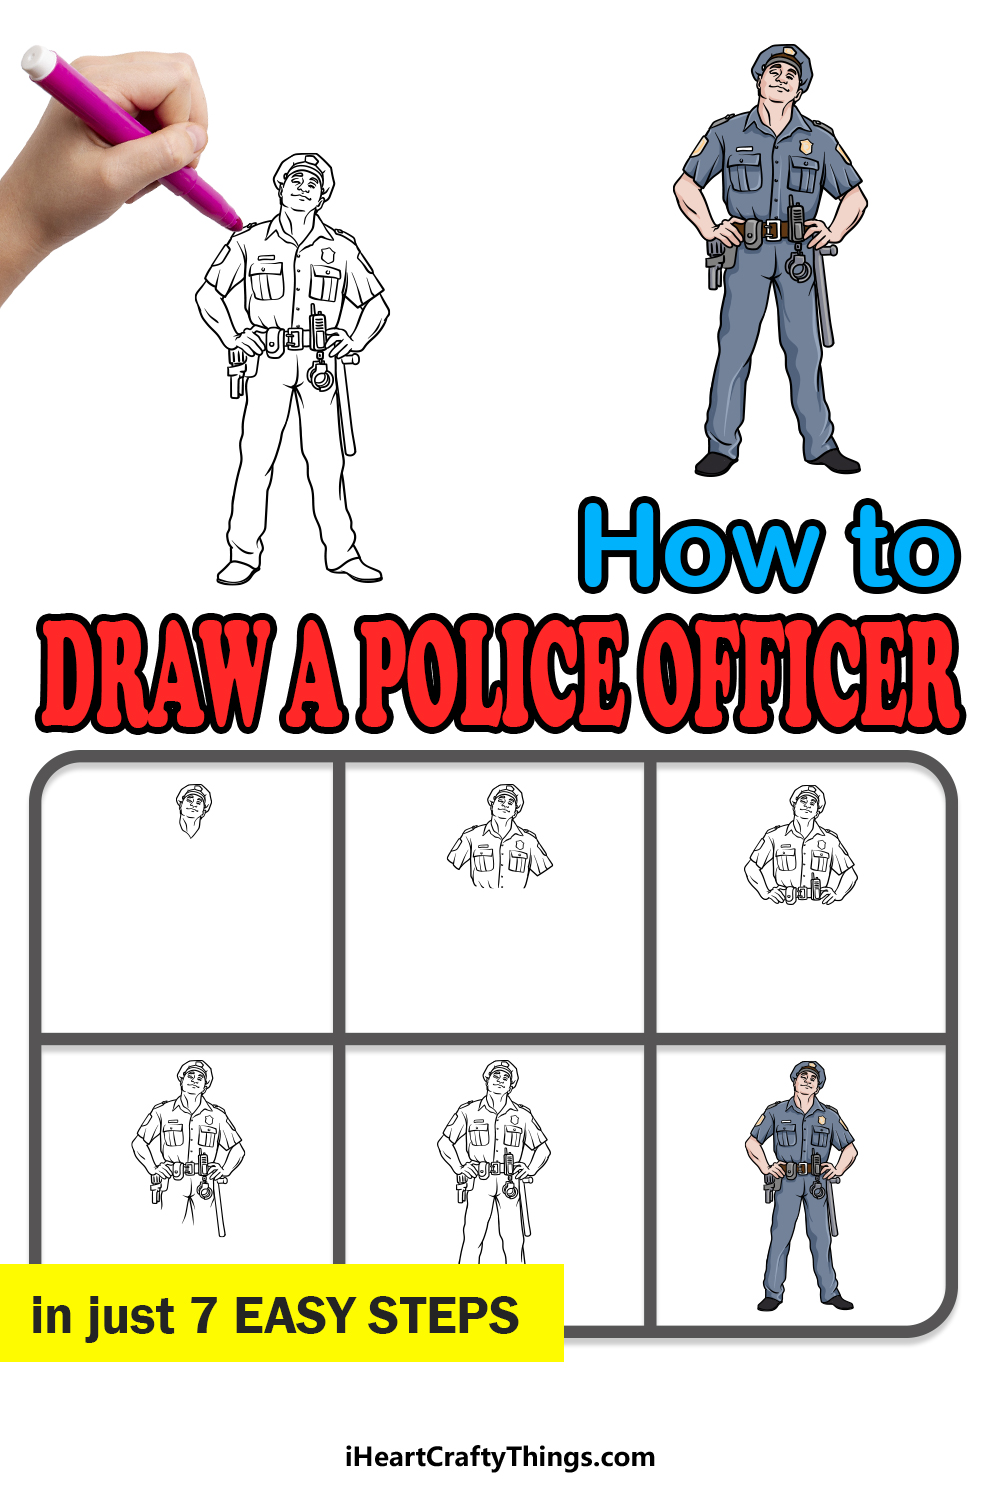 how to draw a police officer in 7 easy steps